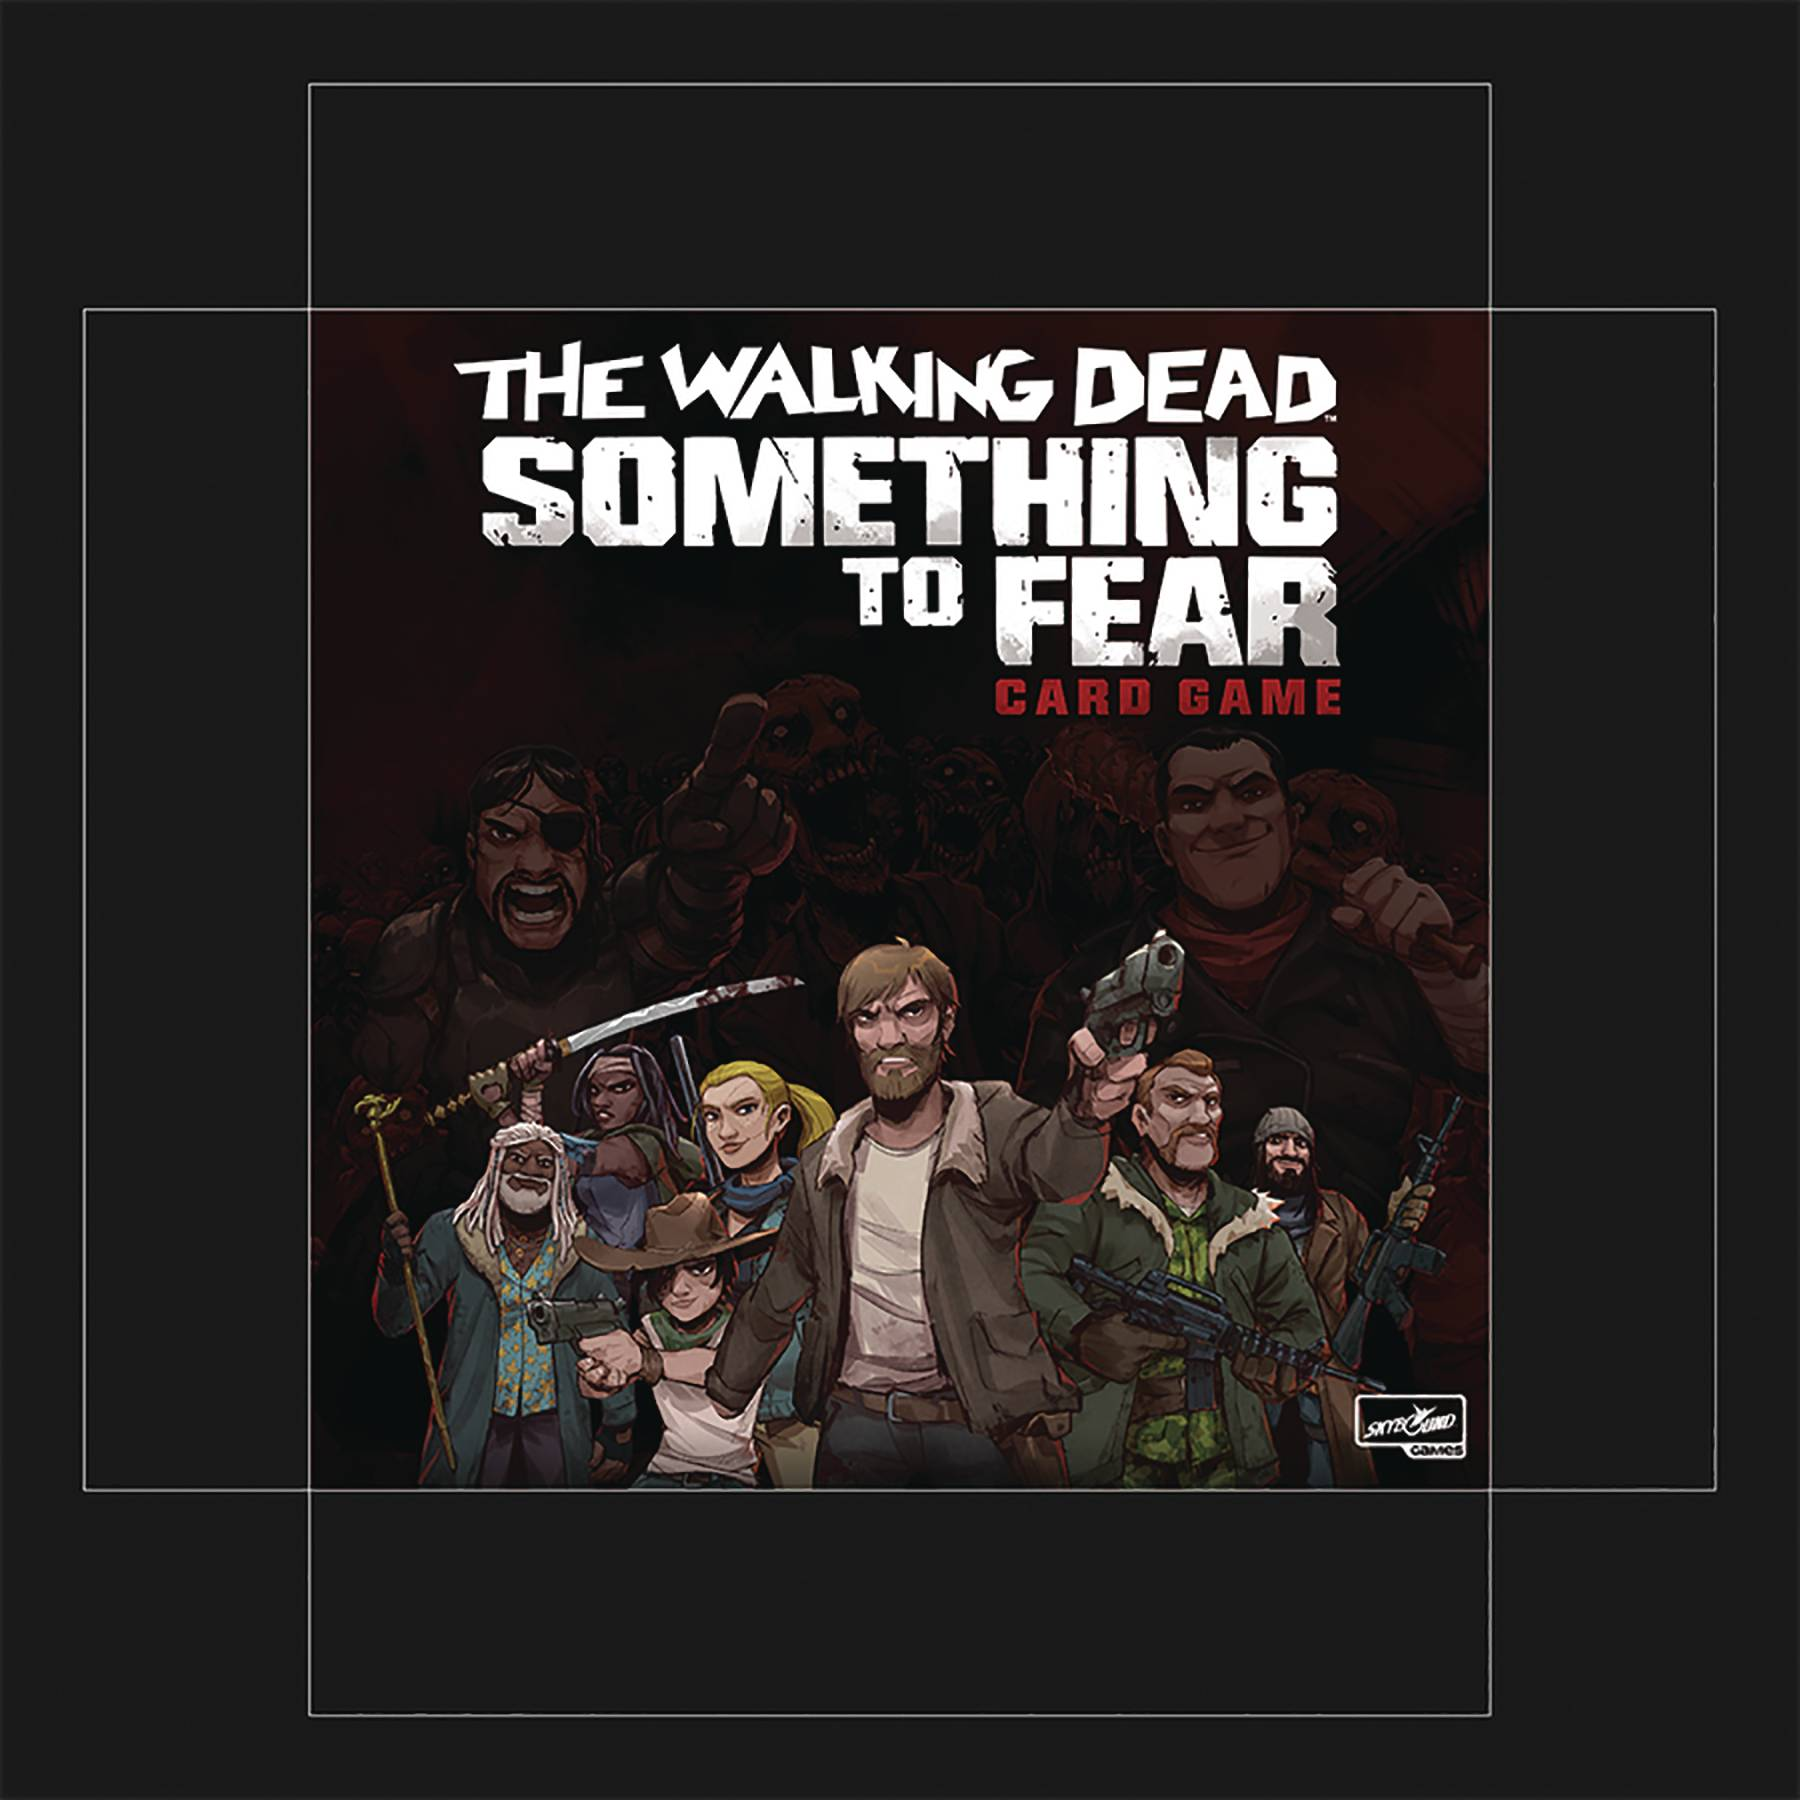 WALKING DEAD SOMETHING TO FEAR CARD GAME.jpg